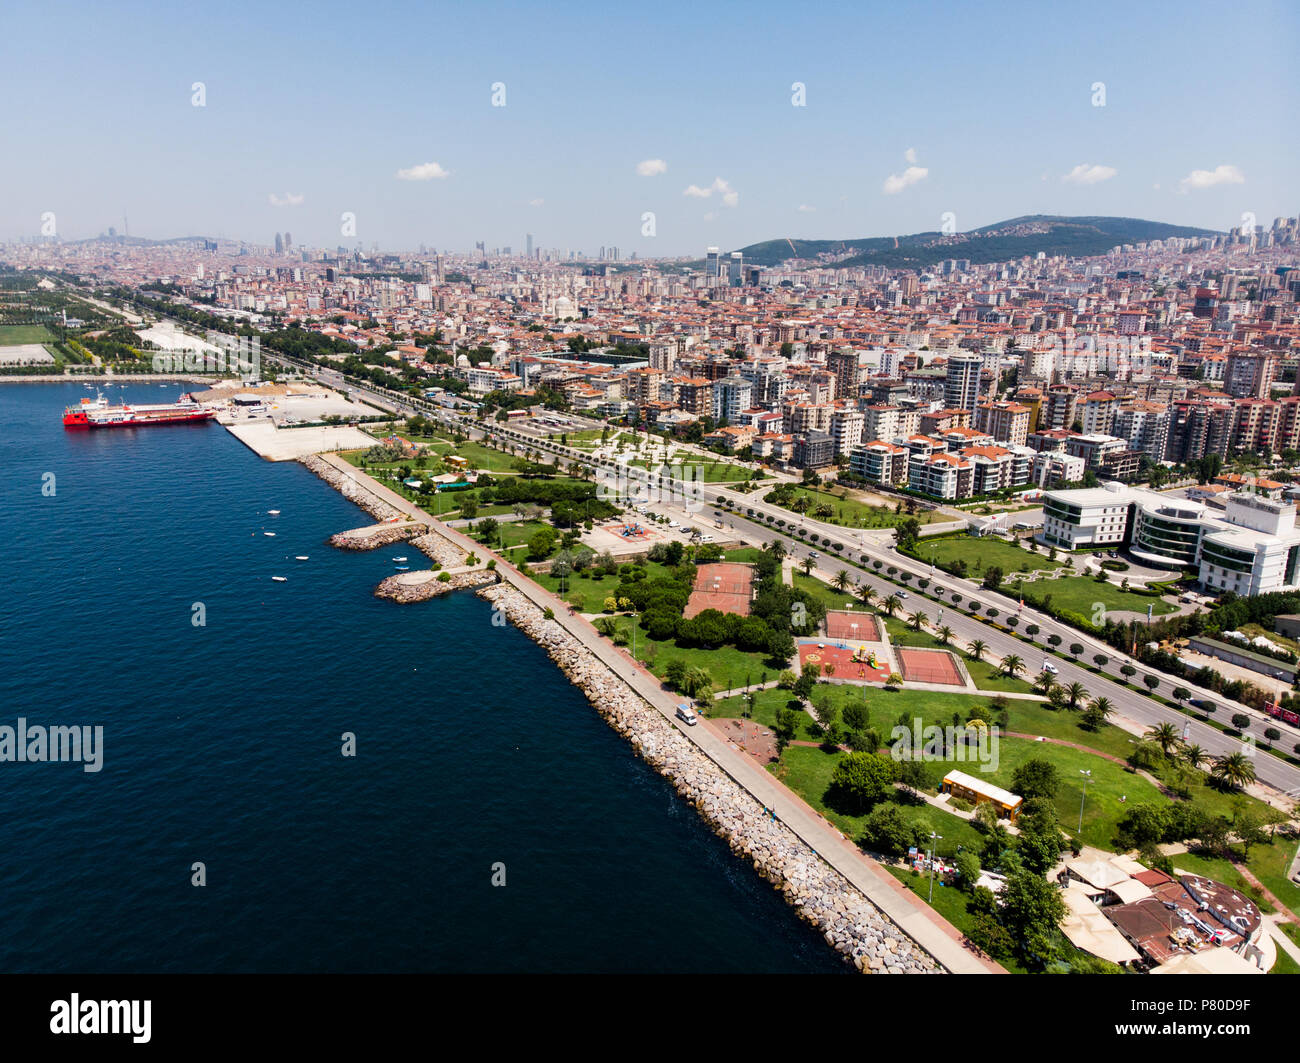 Aerial Drone View Of Kartal Istanbul City Seaside Cityscape Stock